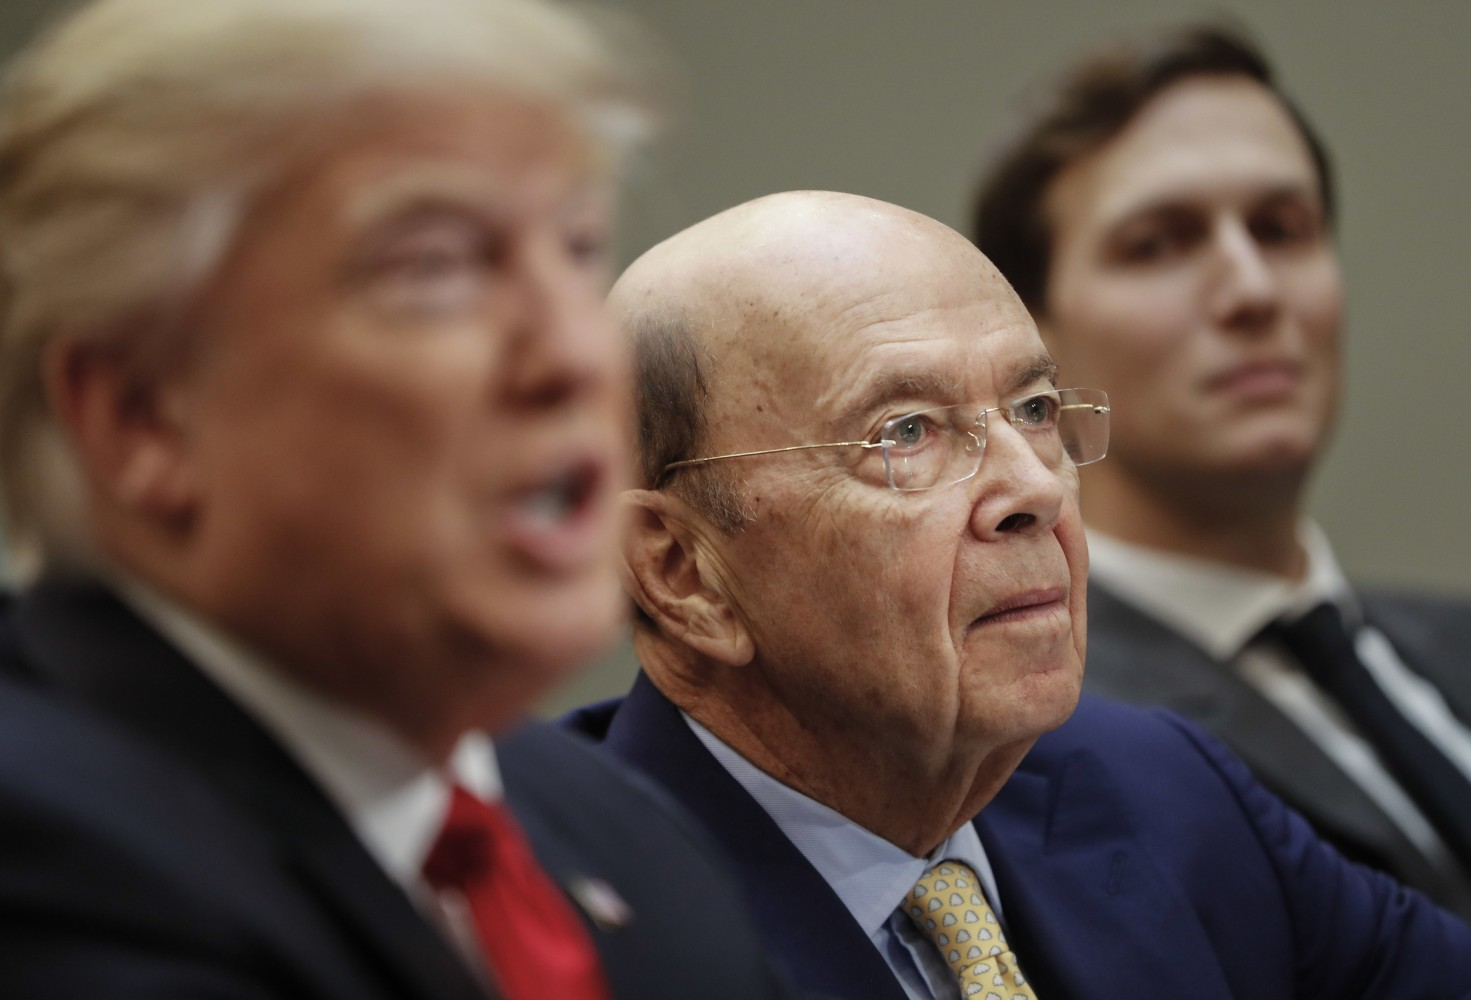 Senate confirms Wilbur Ross as U.S. commerce secretary